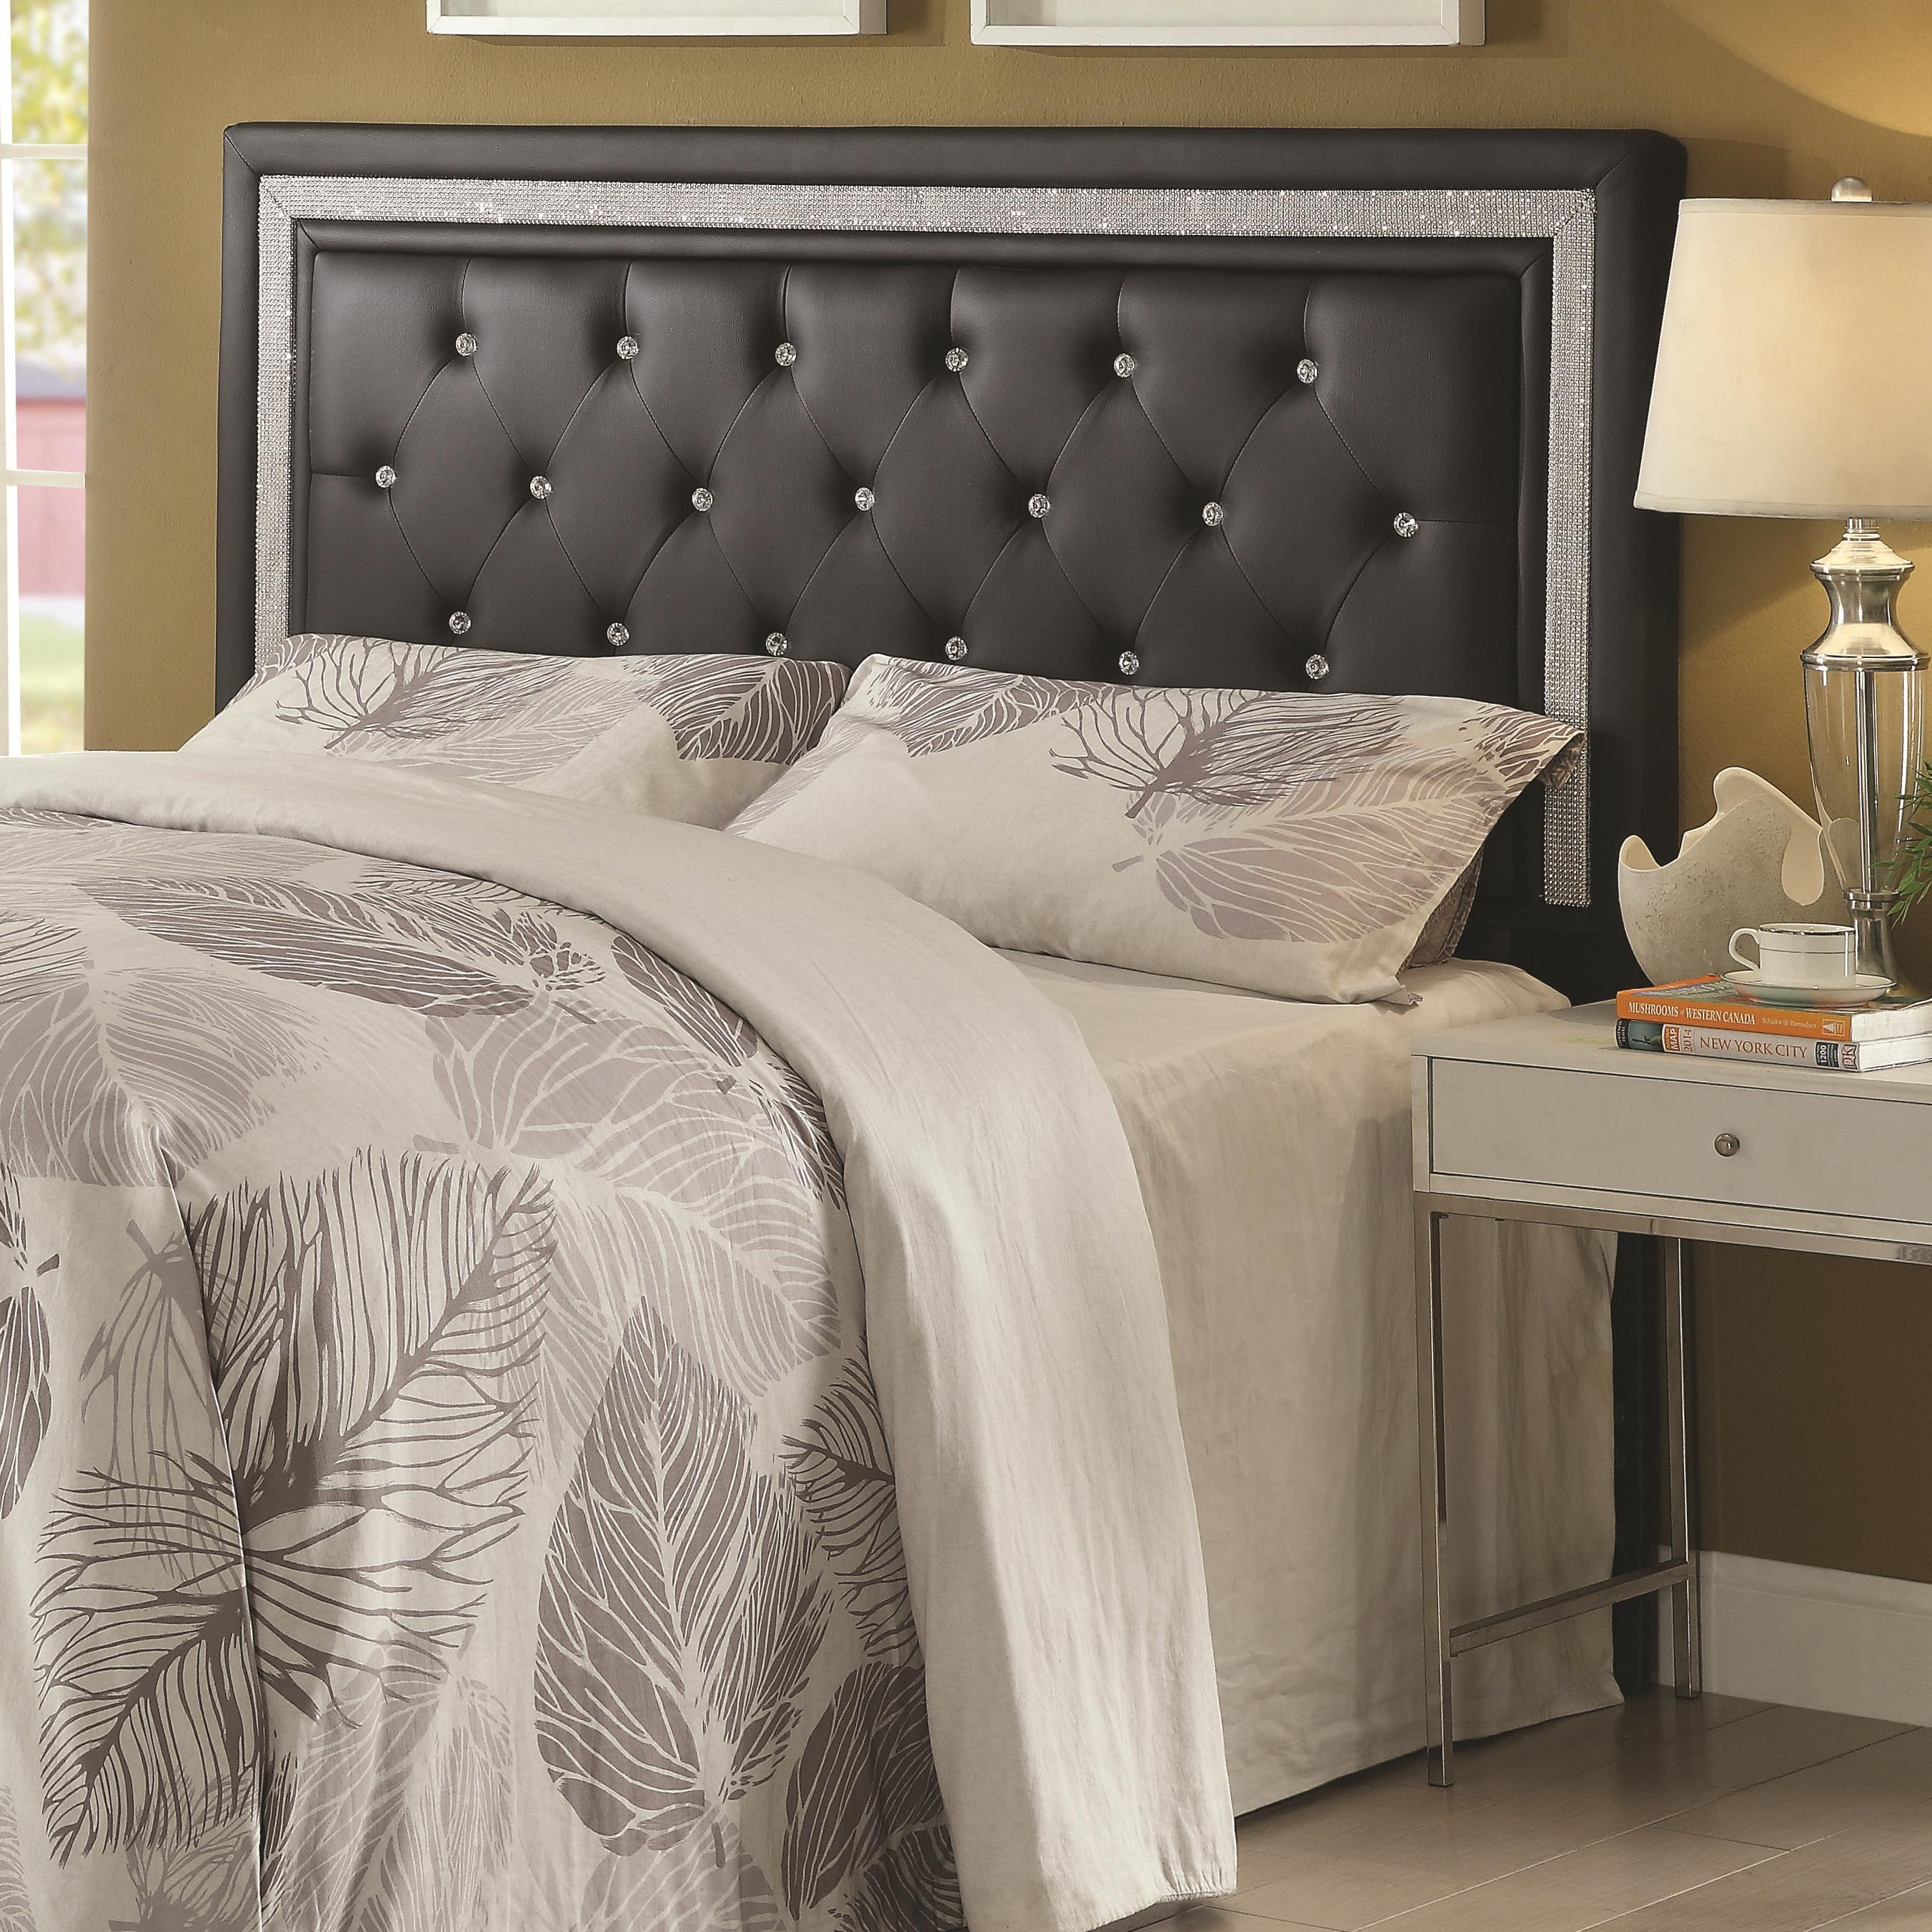 Andenne Bedroom Queen/Full Headboard by Coaster at Northeast Factory Direct